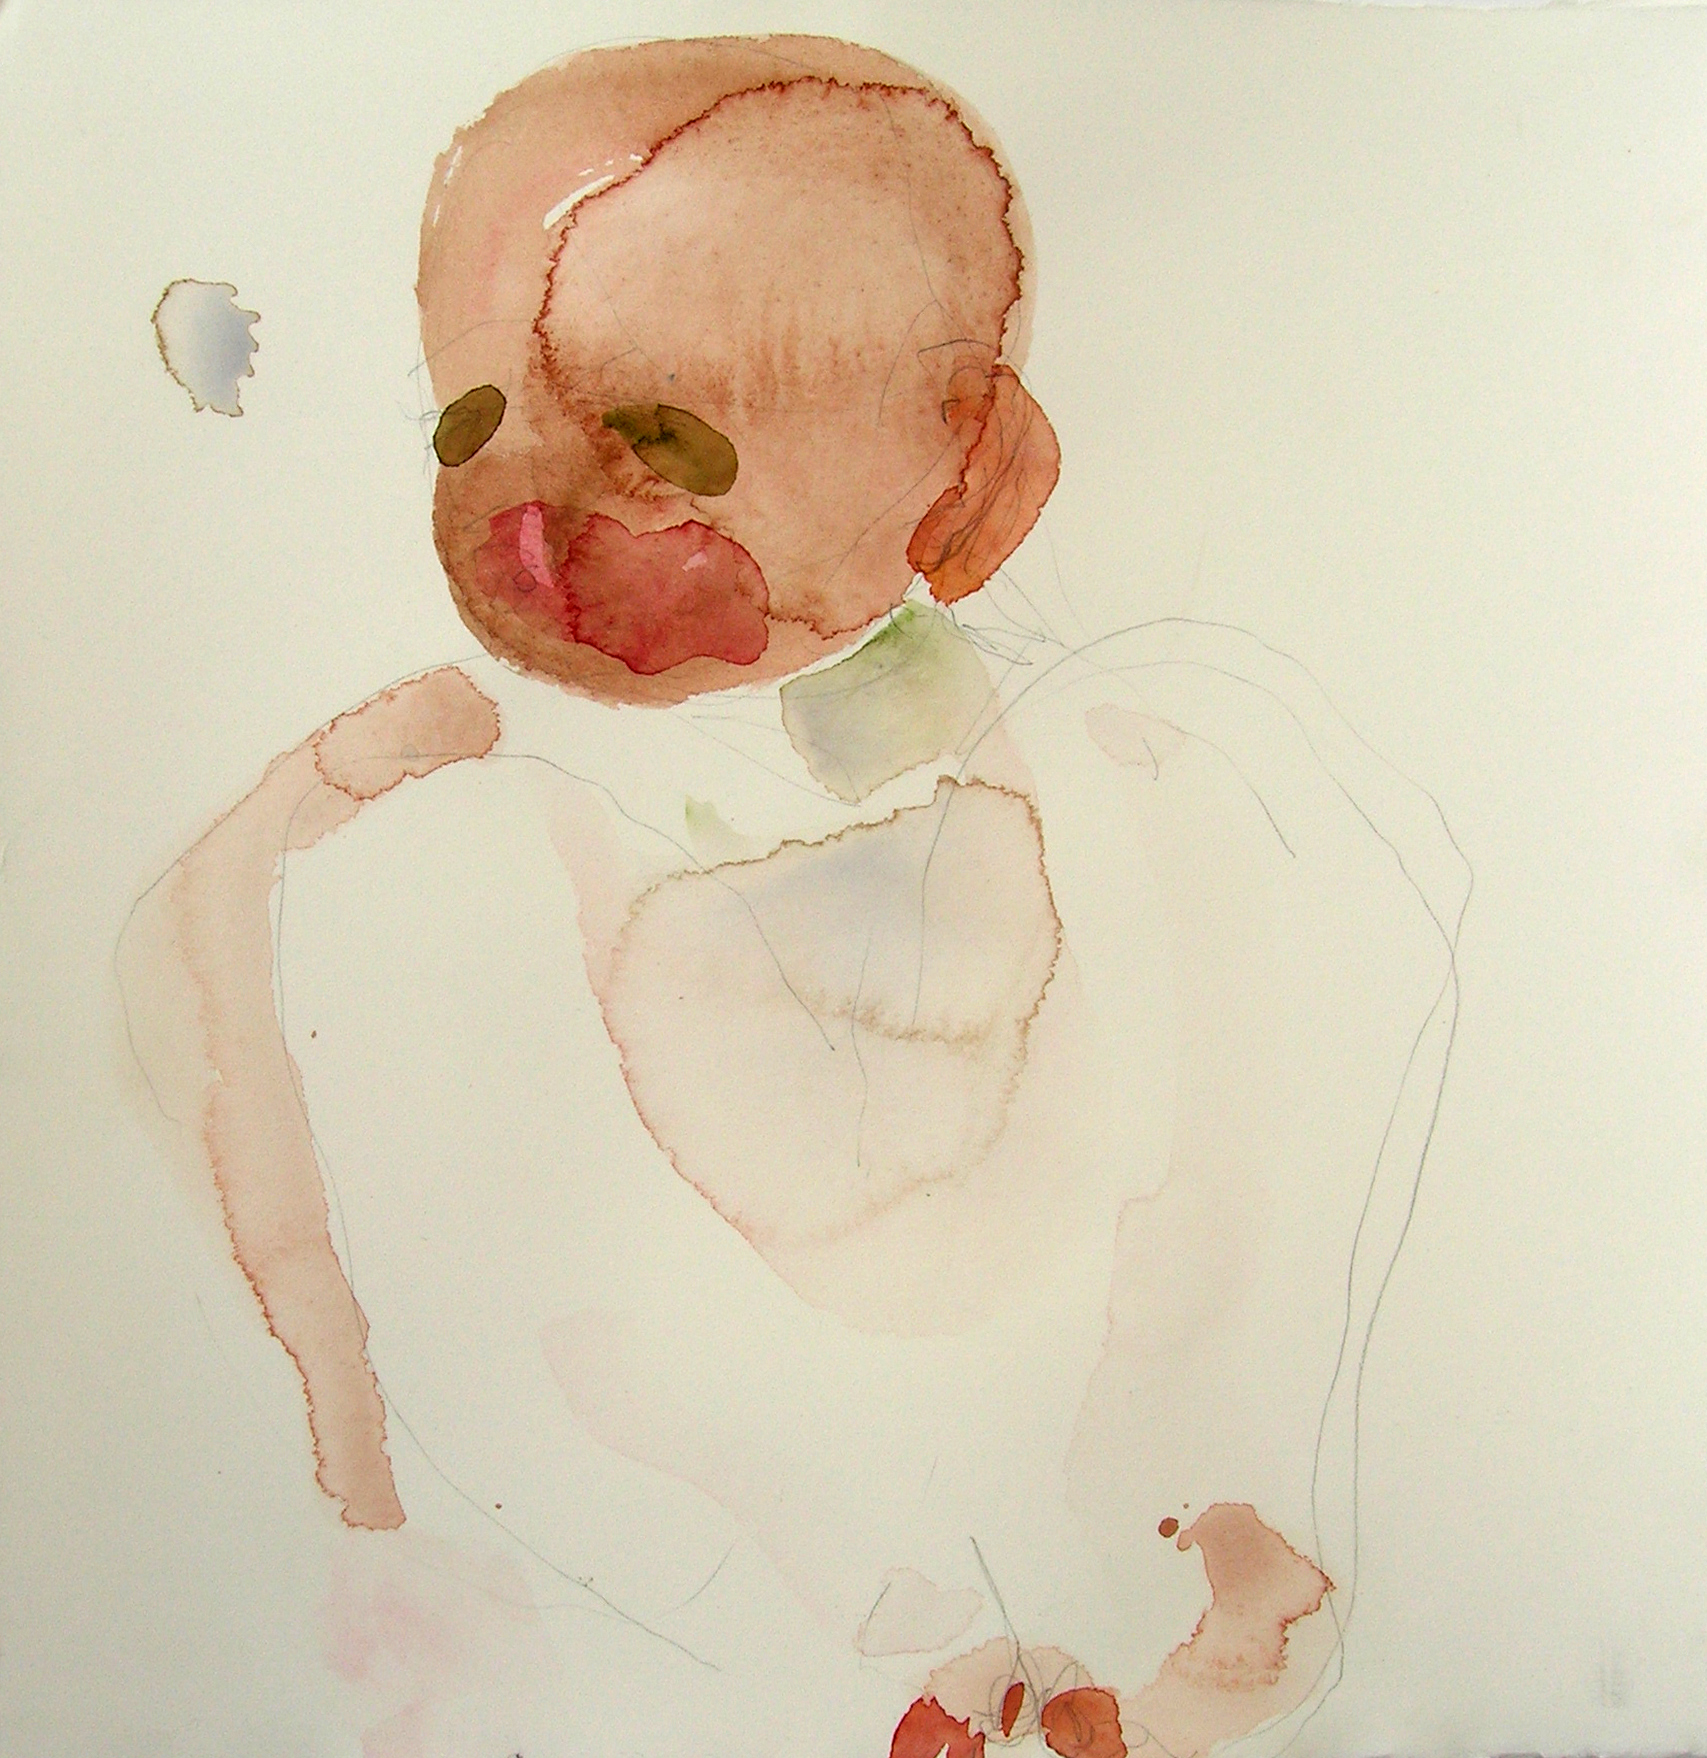 Sentar 18, 2007, Graphite and watercolor on paper, 13 X 12 in.